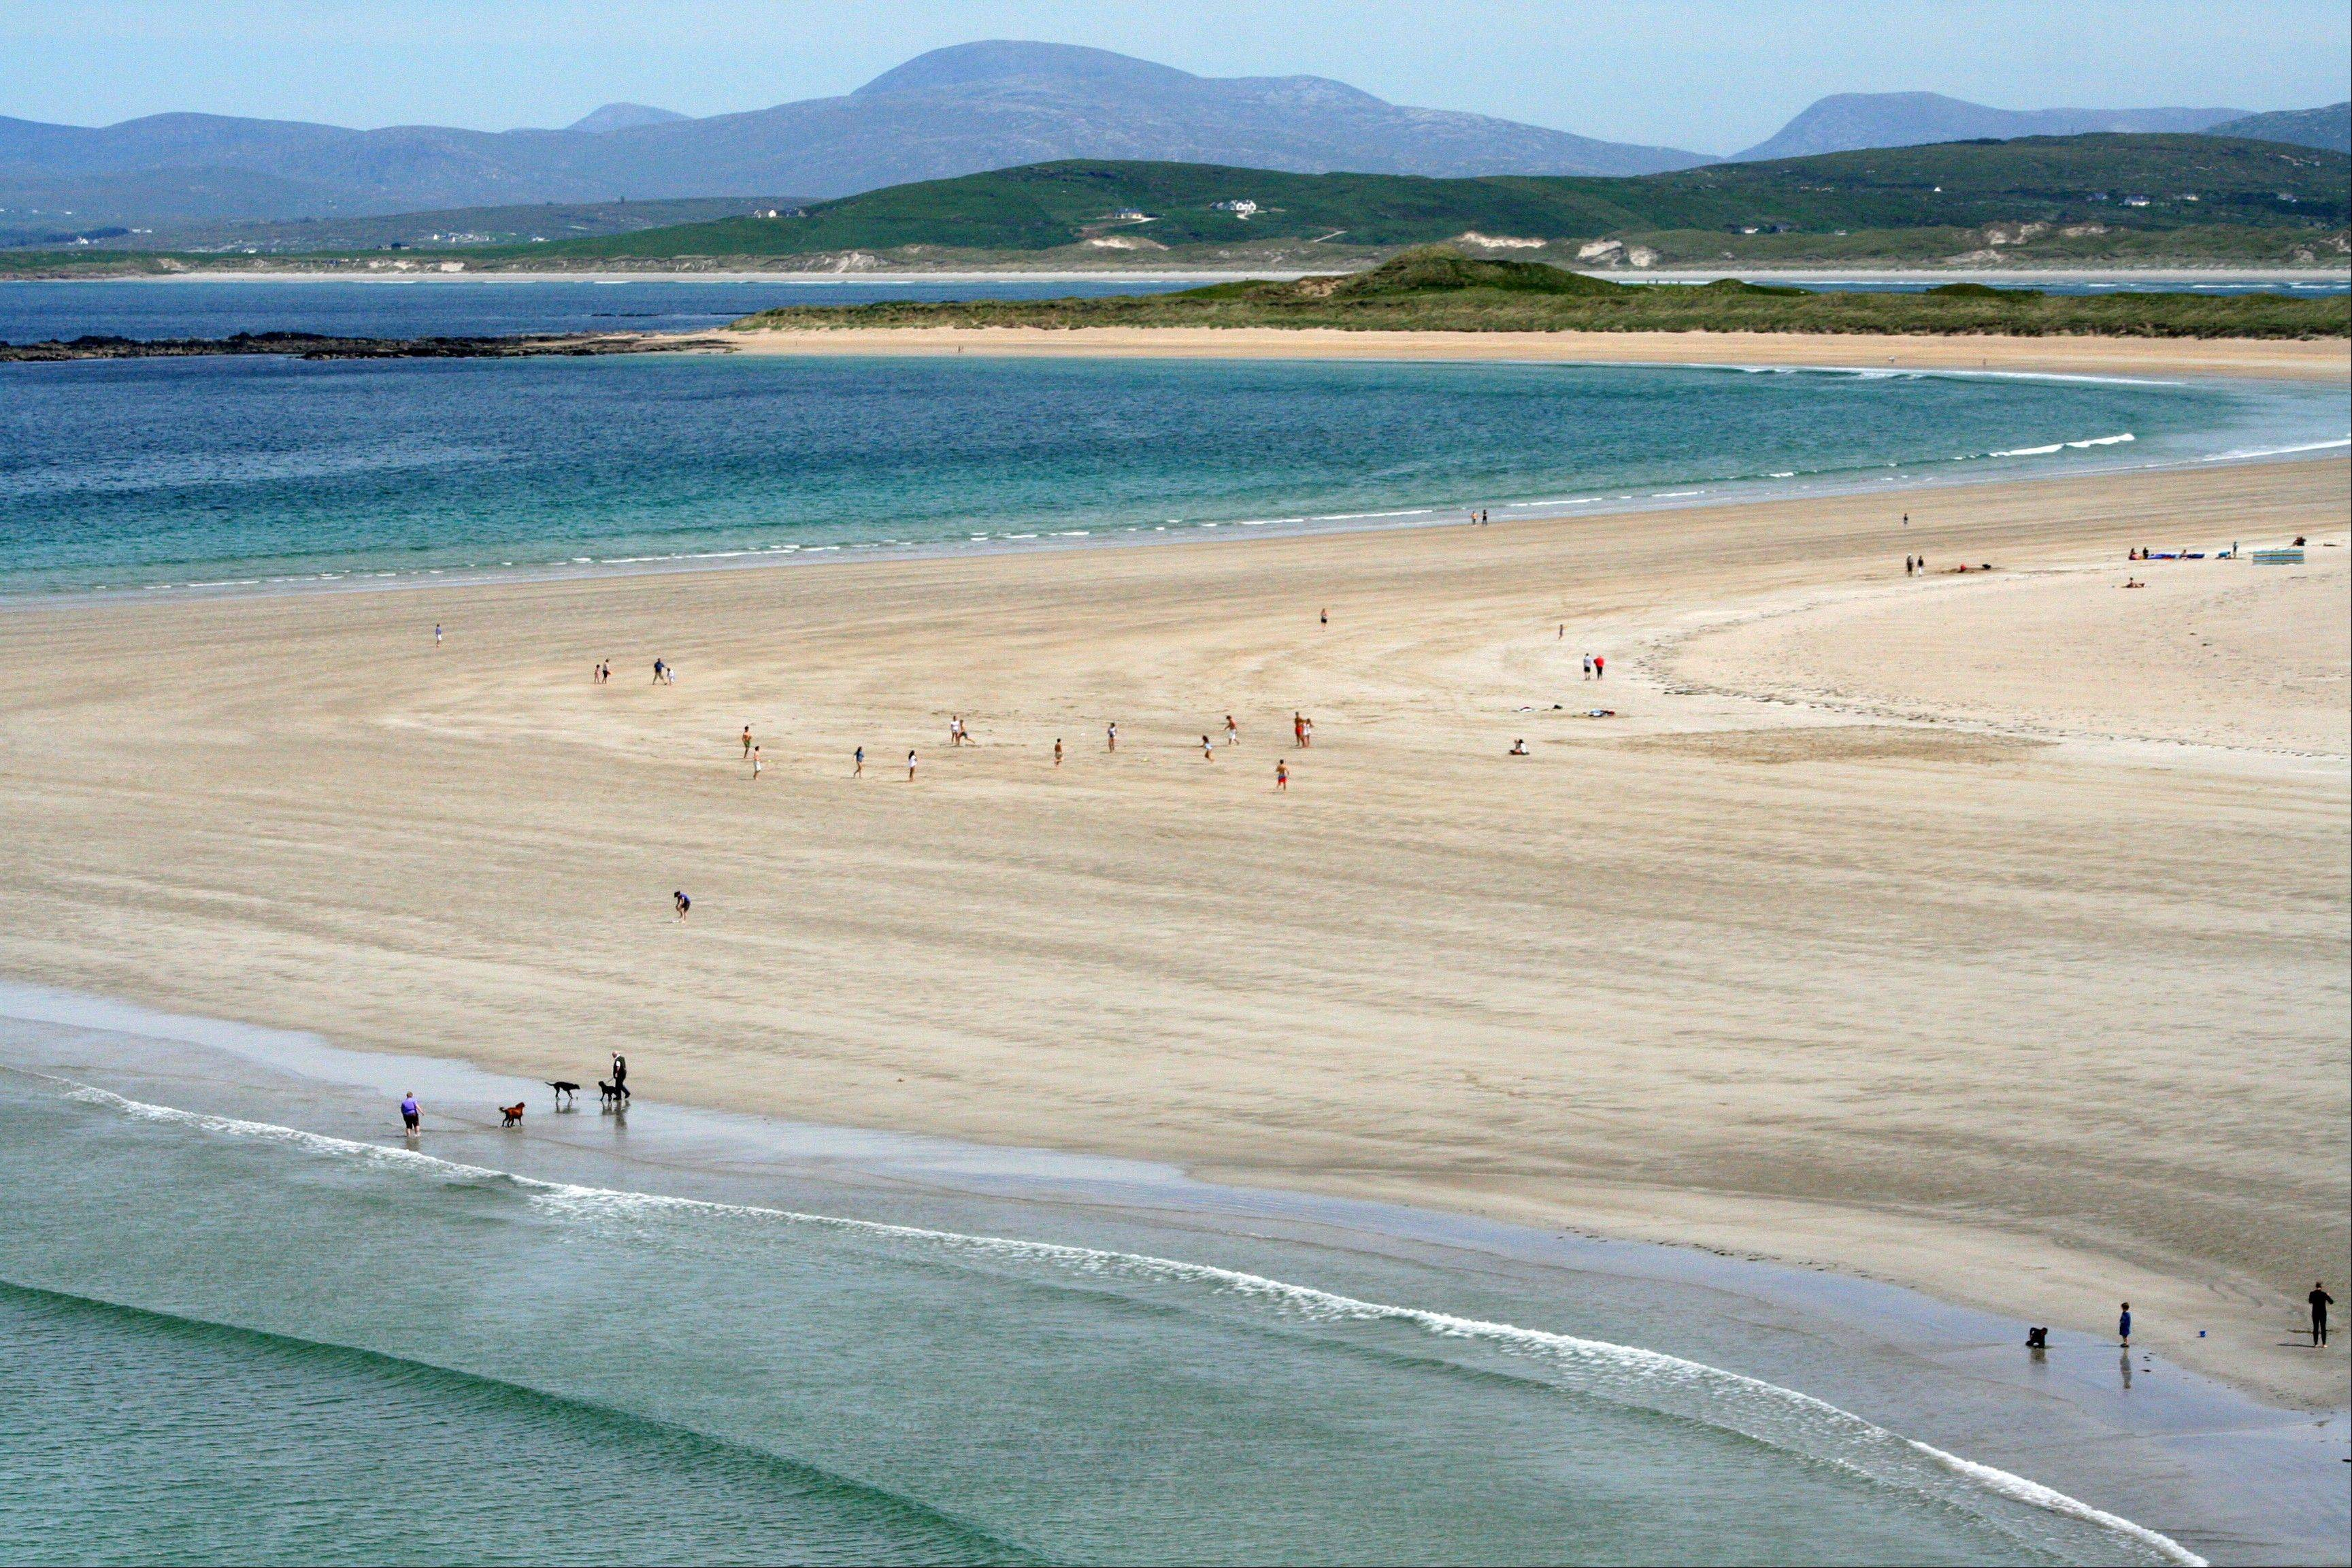 Swirls of sand, land and sea at the Portnoo Strand in County Donegal, Ireland.